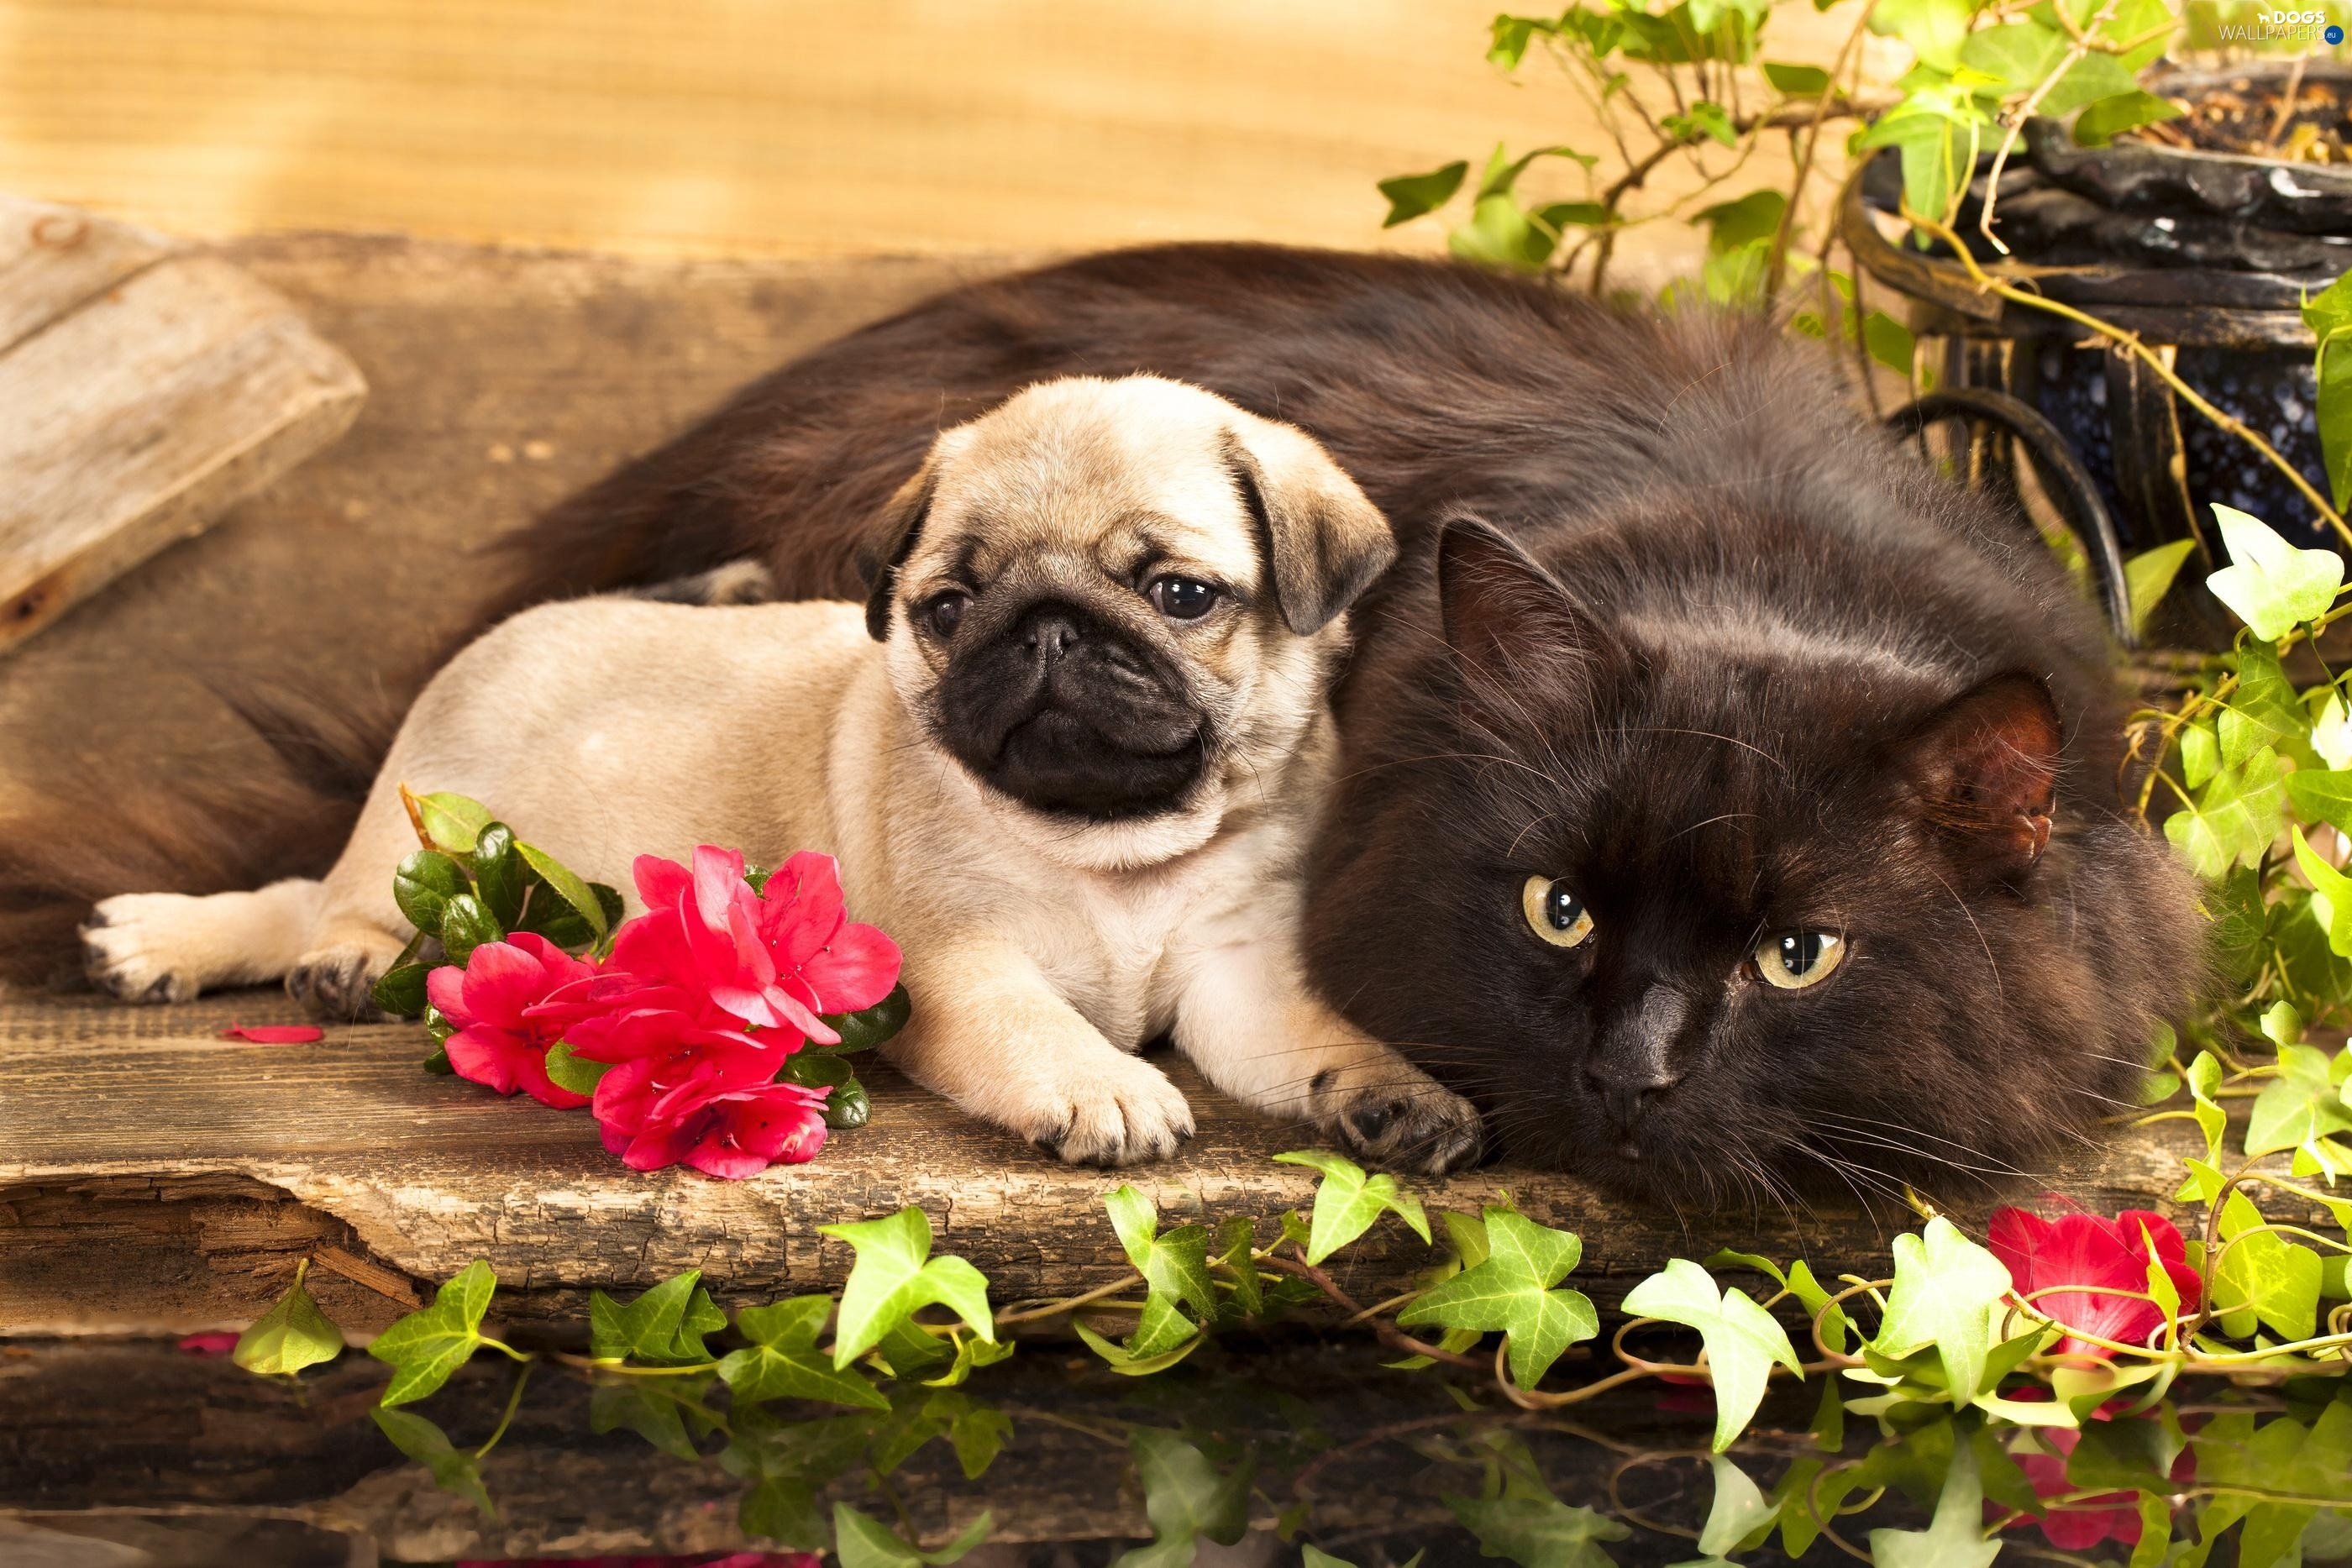 Cute Dog Wallpaper Backgrounds Puppy Flowers Cat Dogs Wallpapers 2800x1867